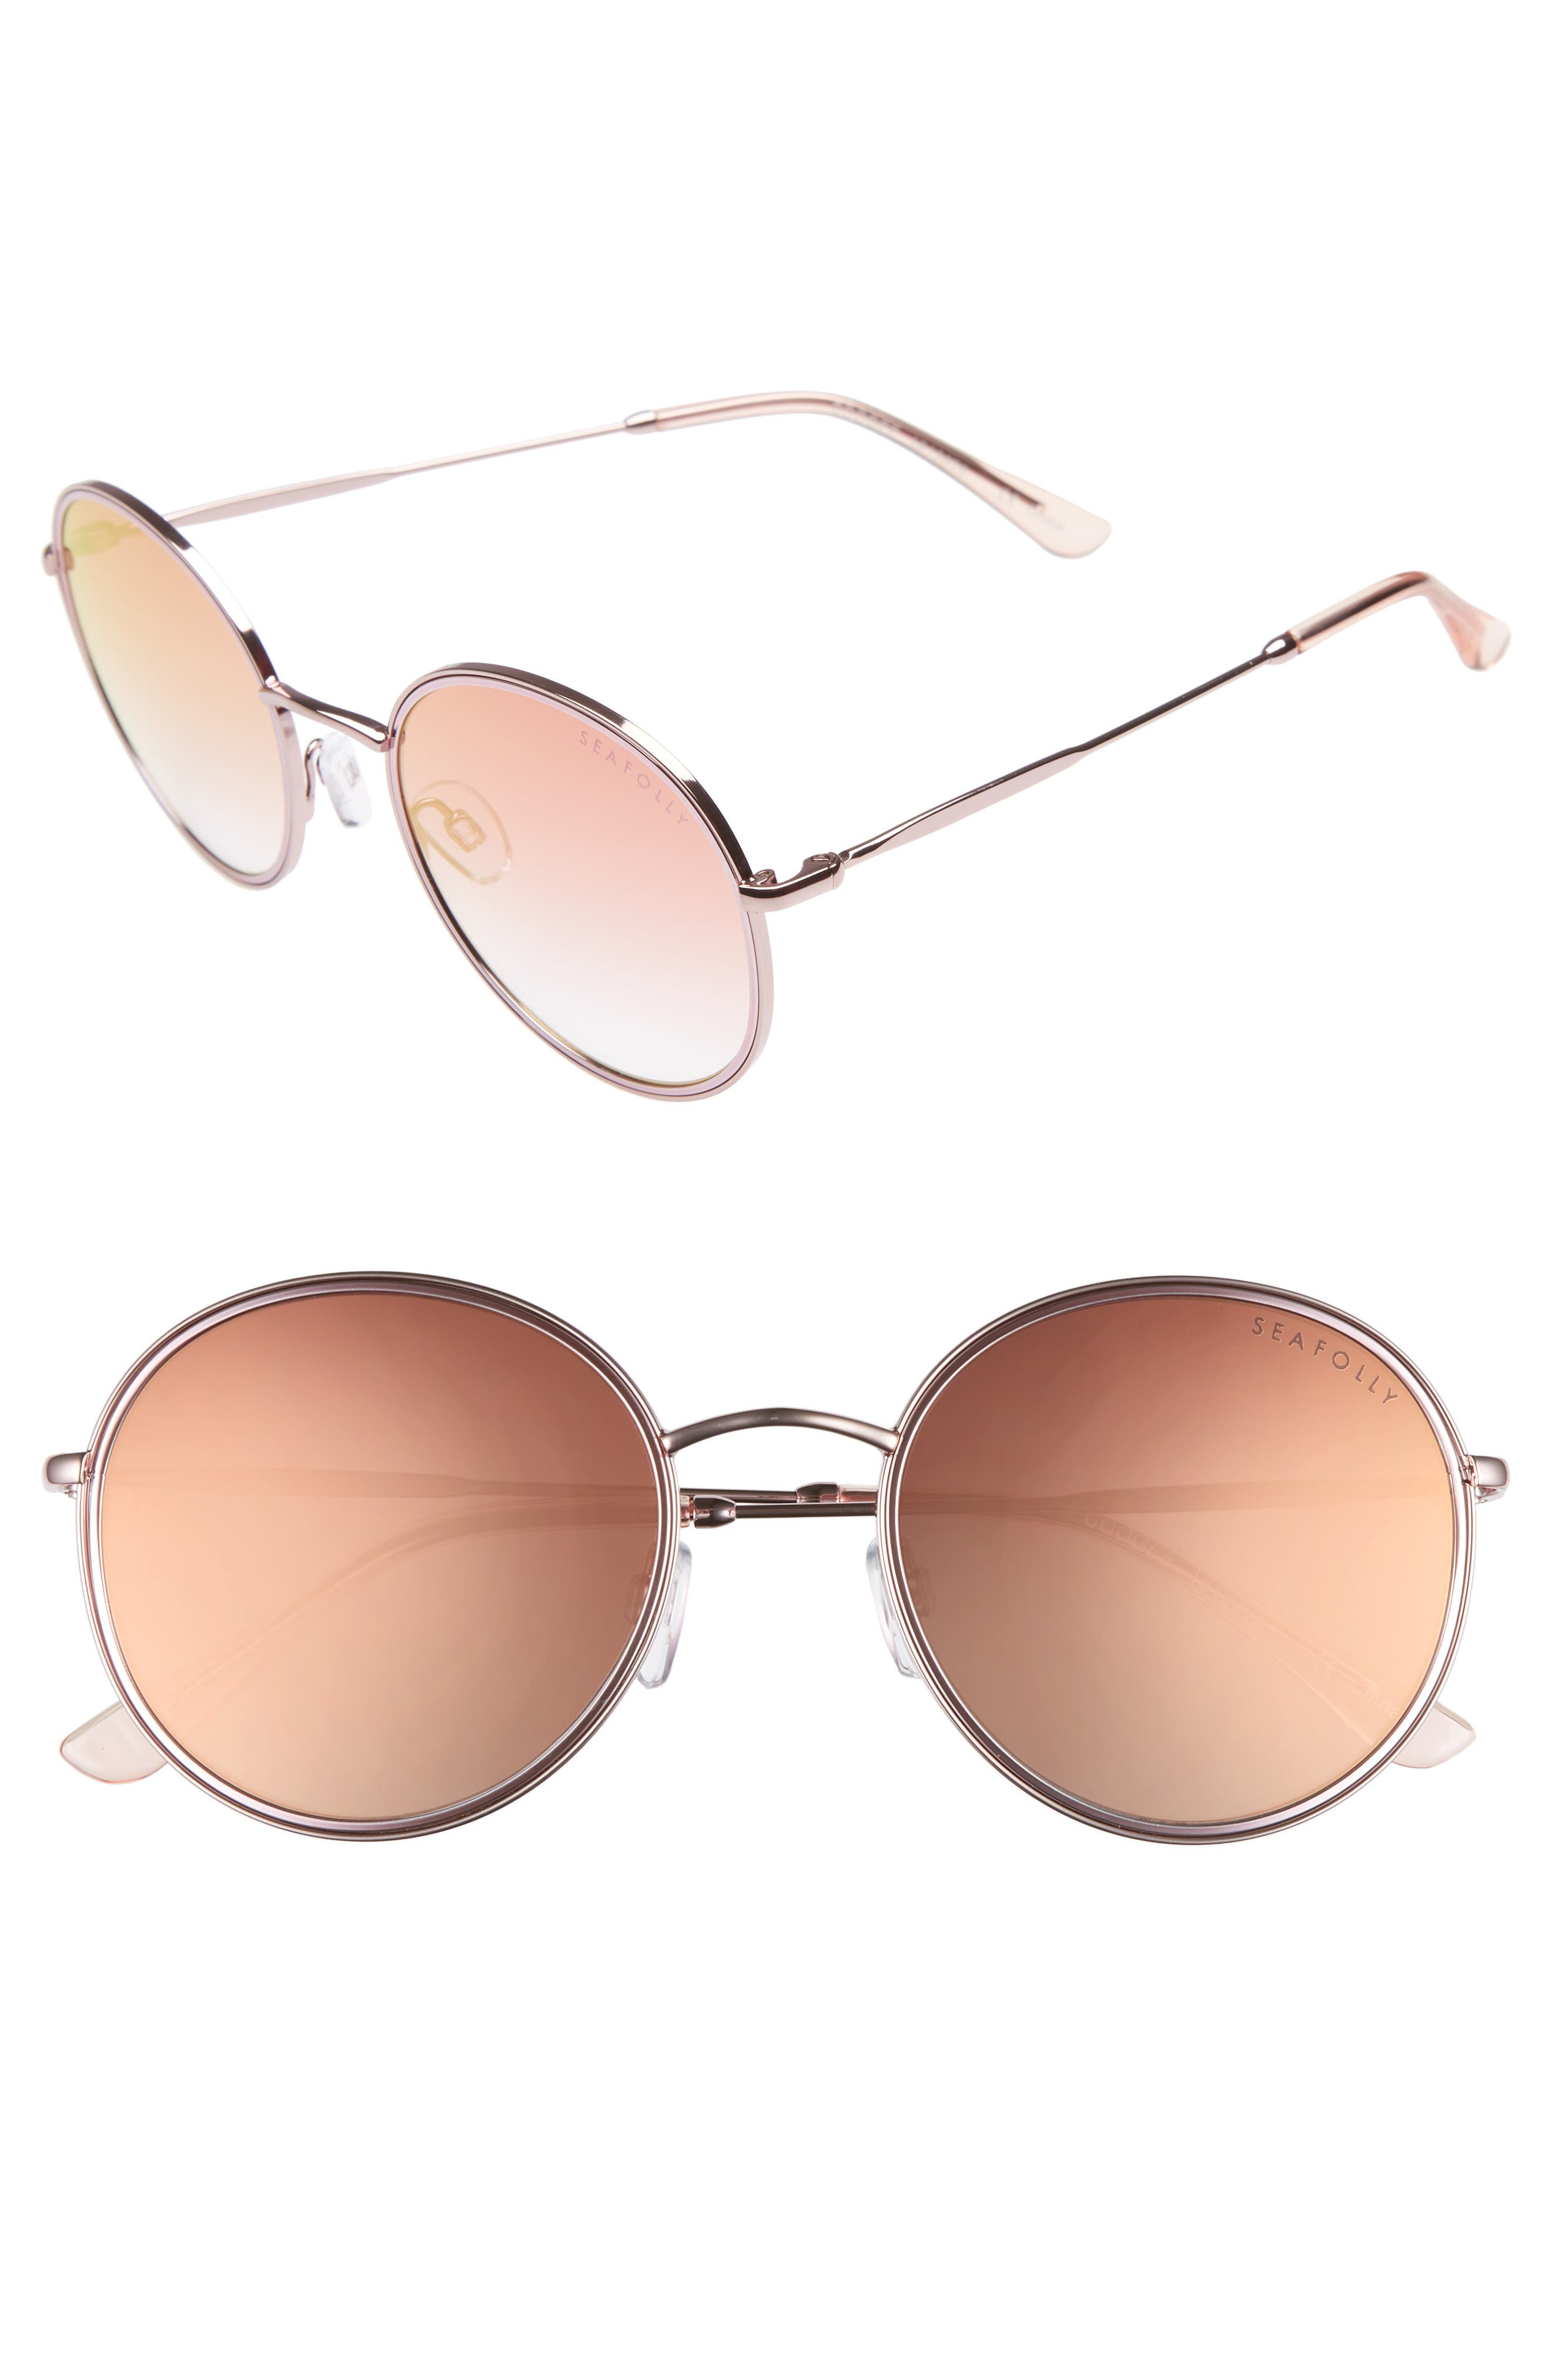 Coogee 54mm Round Sunglasses,                         Main,                         color, Rose